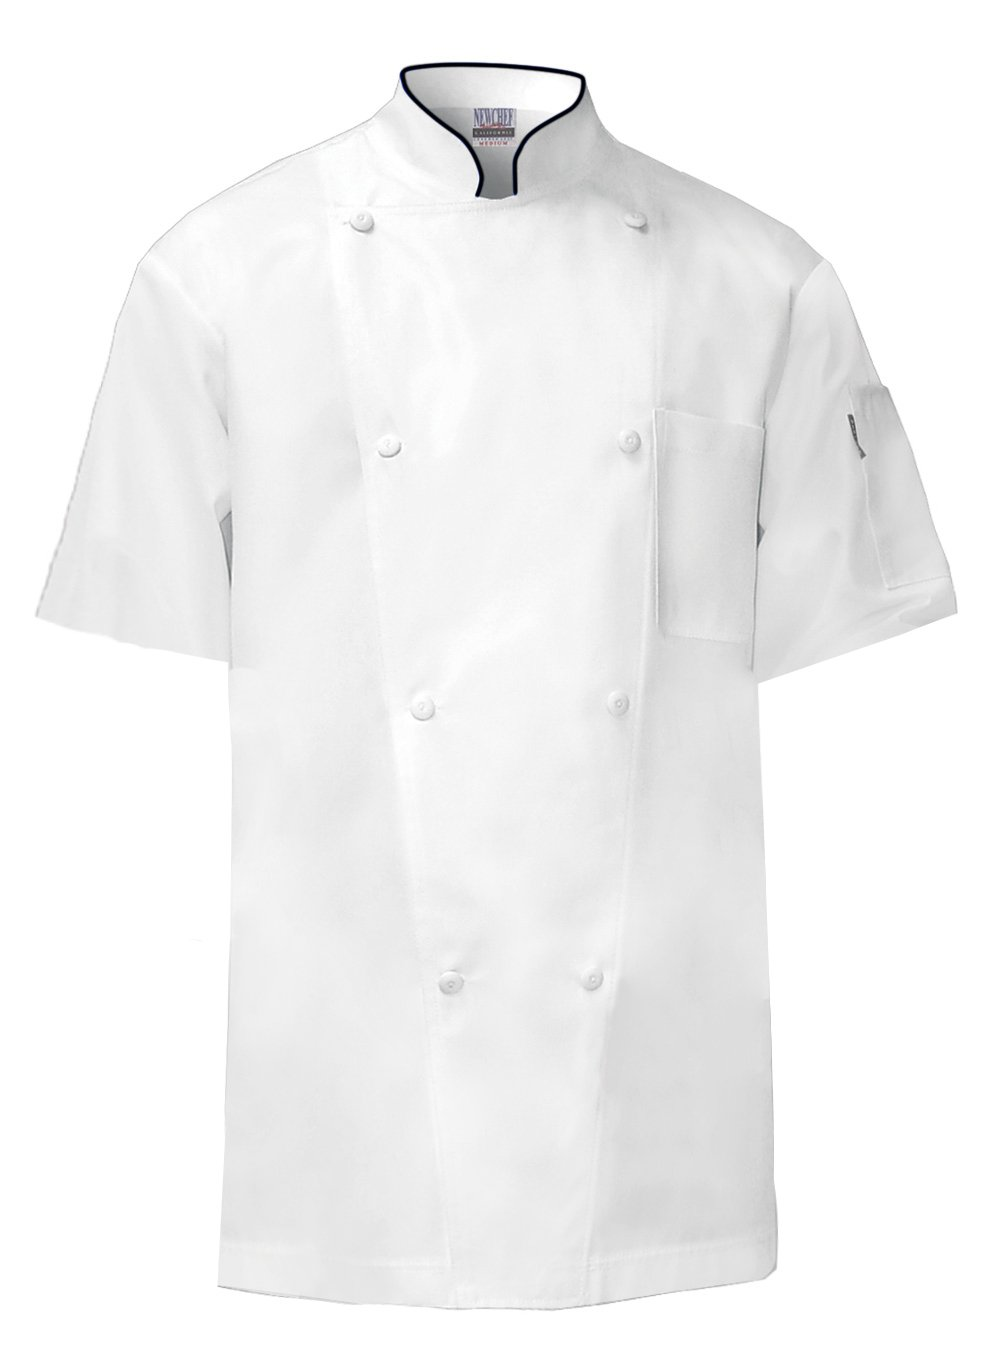 Newchef Fashion White Regent Short Sleeves Chef Coat with Black Trim 3XL White by Newchef Fashion